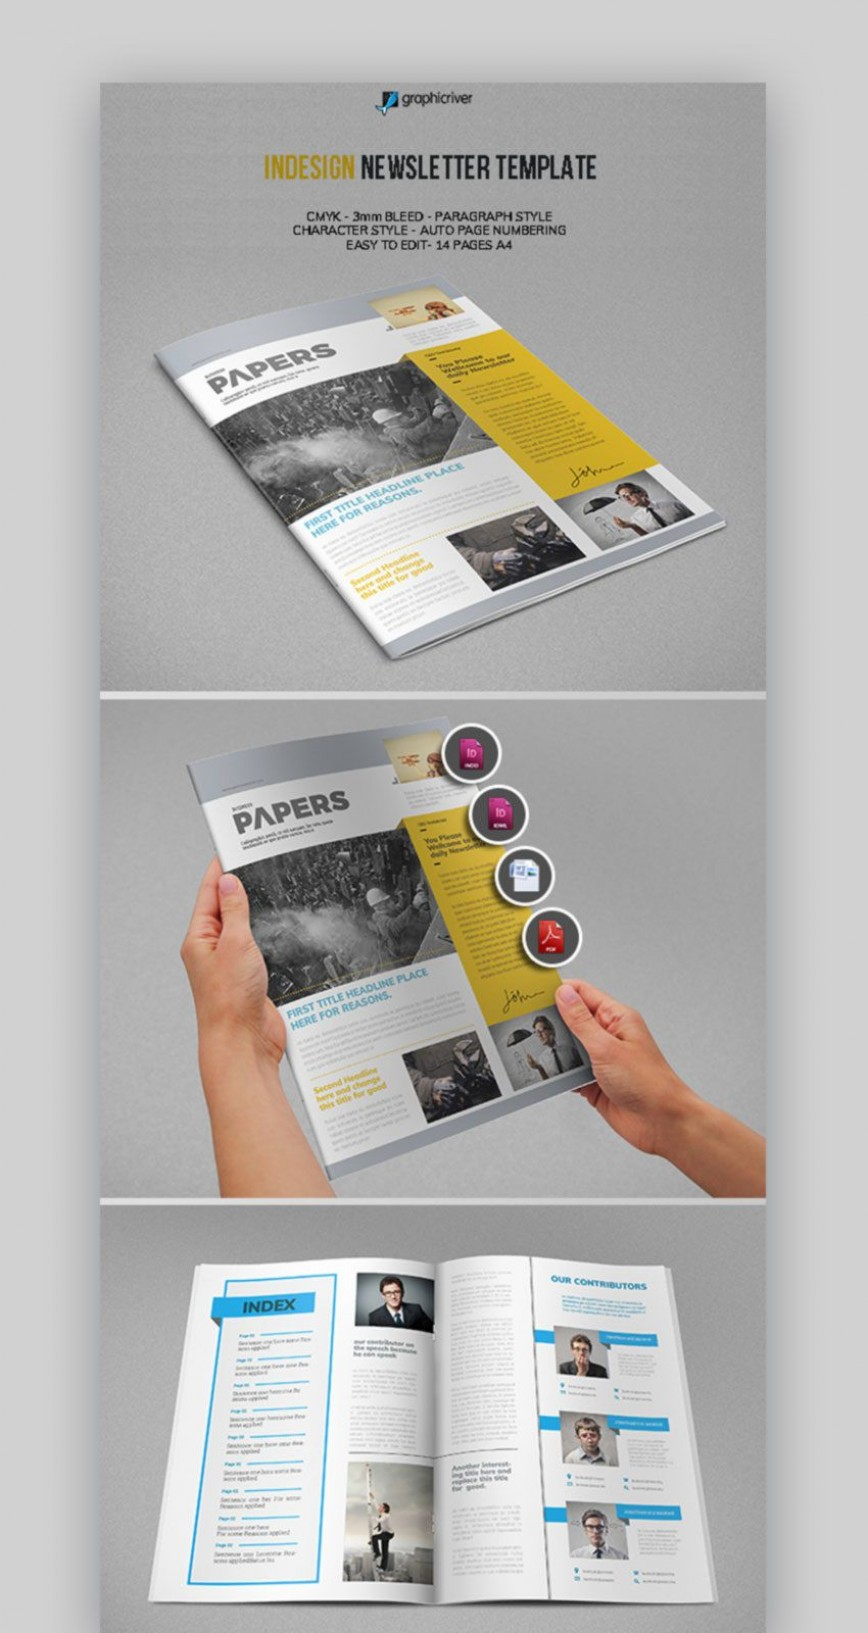 004 Phenomenal Publisher Newsletter Template Free Image  Microsoft Office Download868